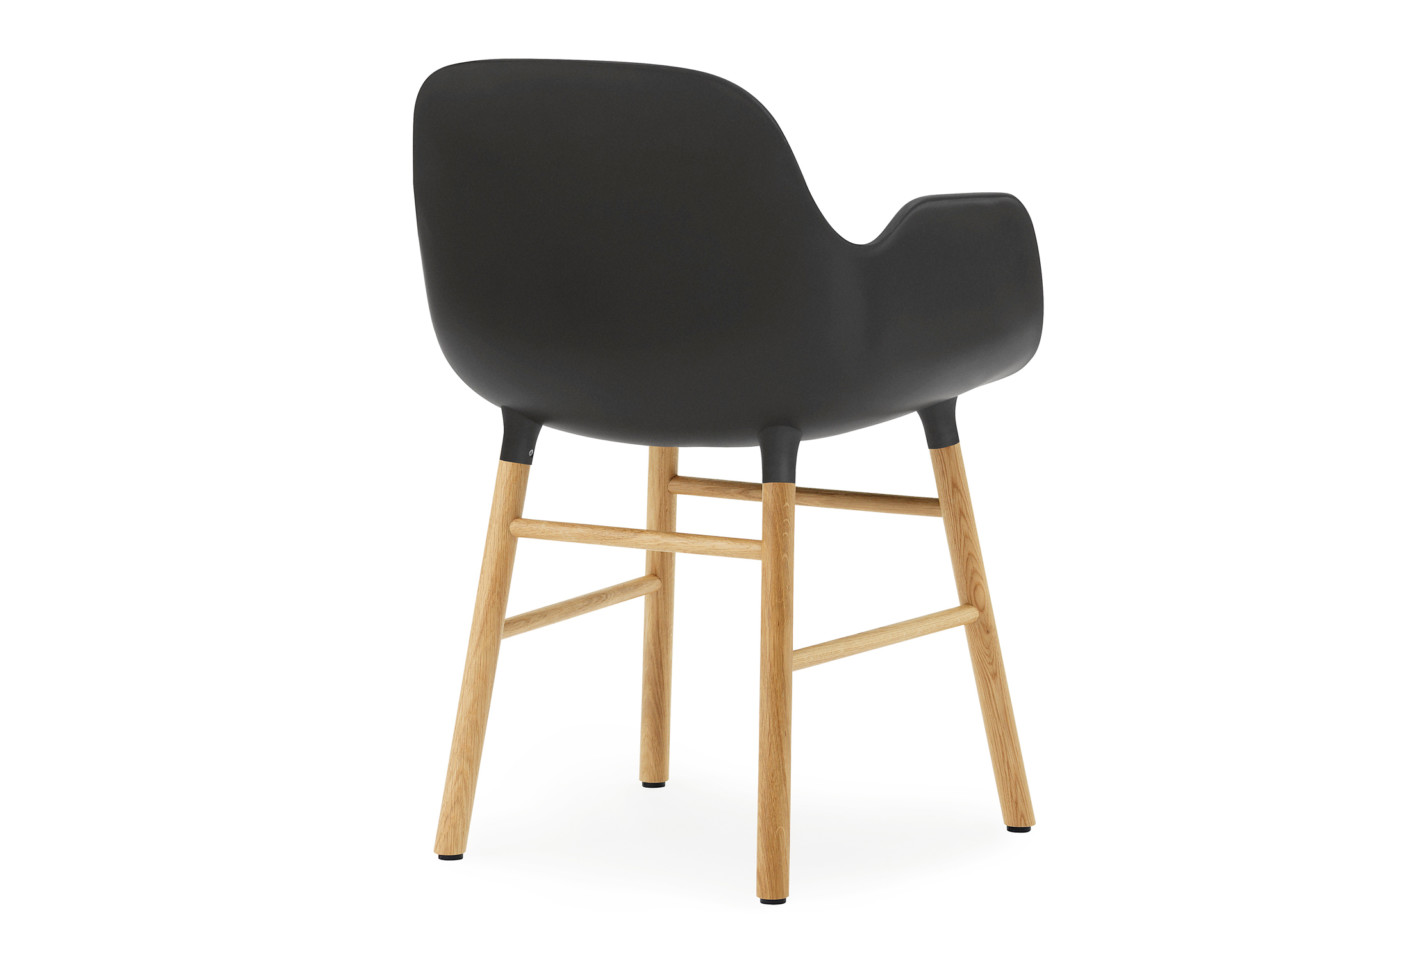 Form Armchair With Wooden Legs By Normann Copenhagen